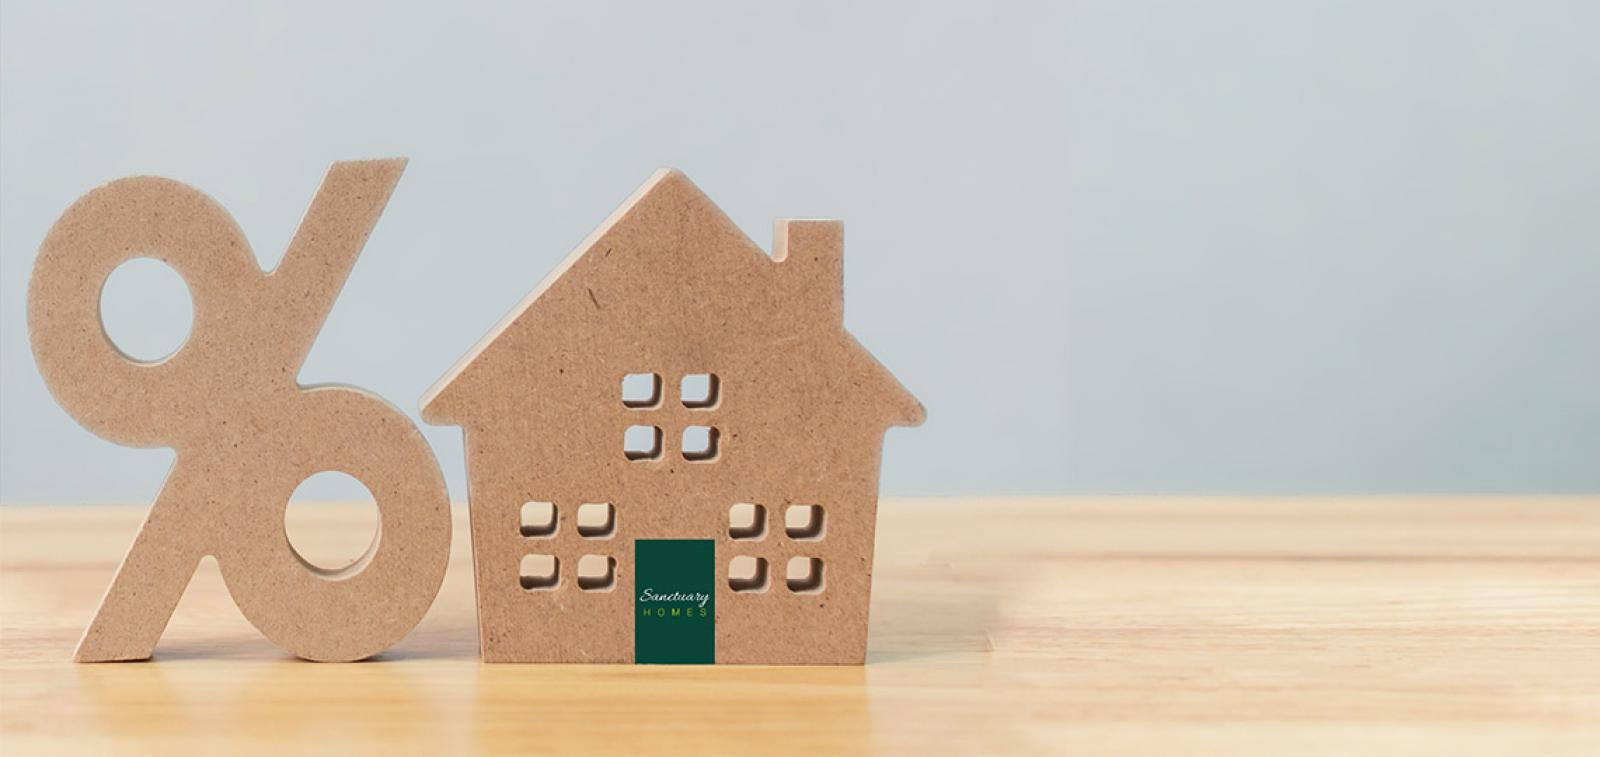 A cardboard cut out of a percentage symbol and a house with the Sanctuary Homes logo on it on a wooden table